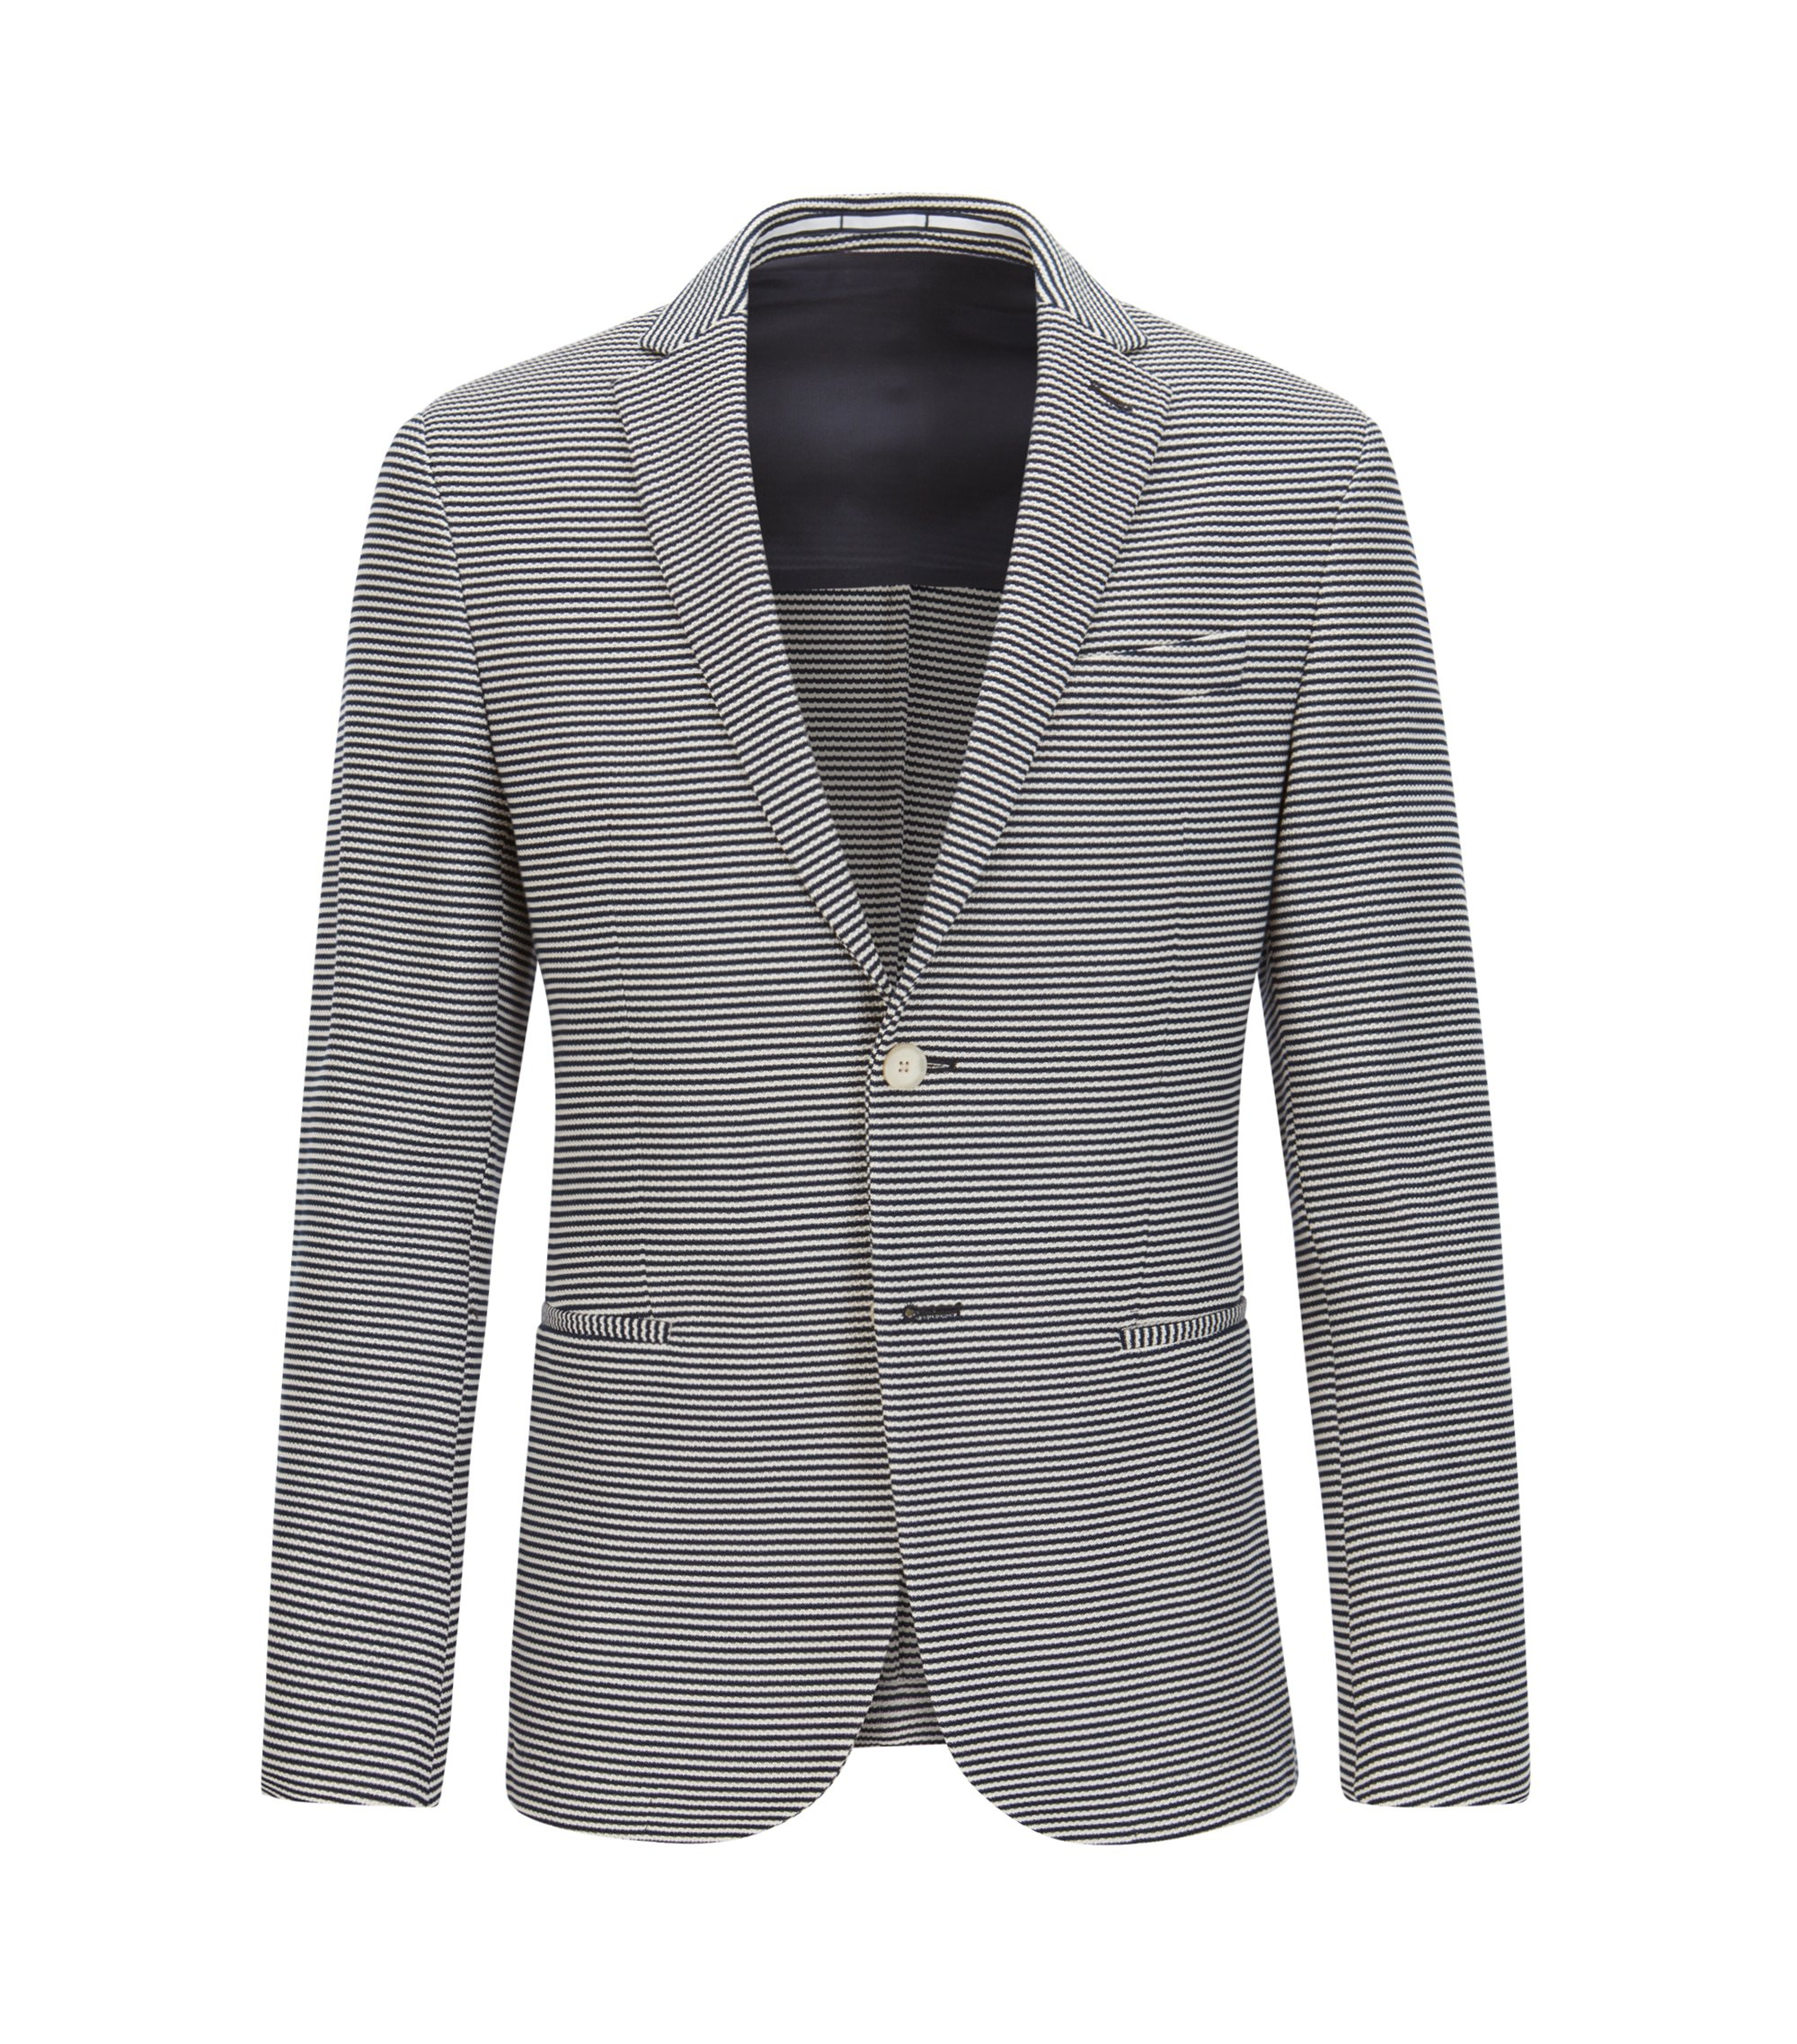 Striped Cotton Sport Coat, Slim Fit | Norwin J, Dark Blue